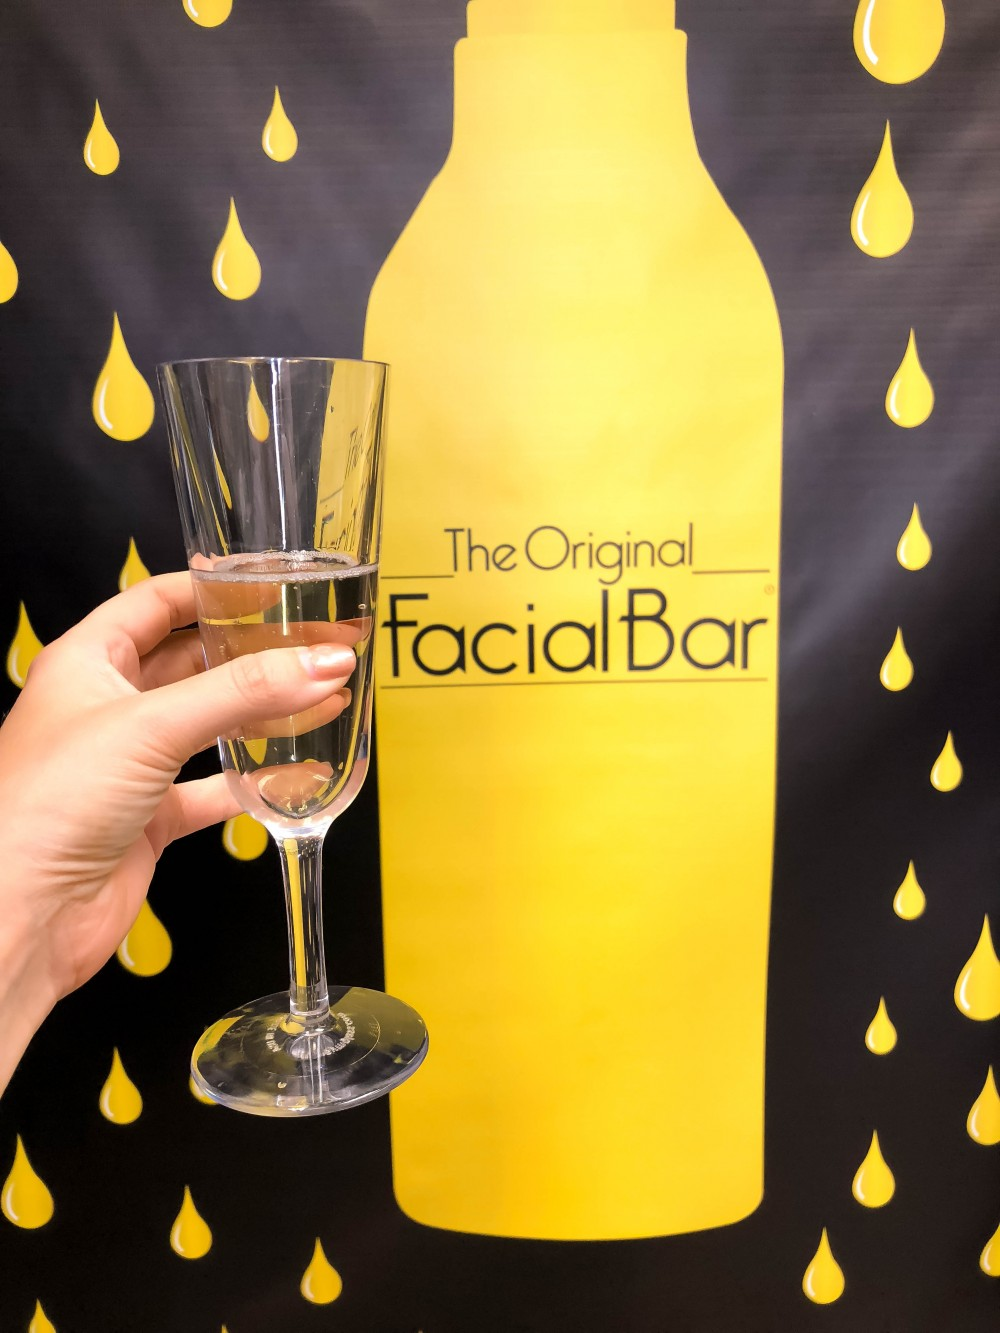 The Original Facial Bar Blogger Event Recap, Skincare, Facial Bar, Magnetic Mud Mask, Green Slime Lifting Mask, Oxygen Facial Treatment, Have Need Want